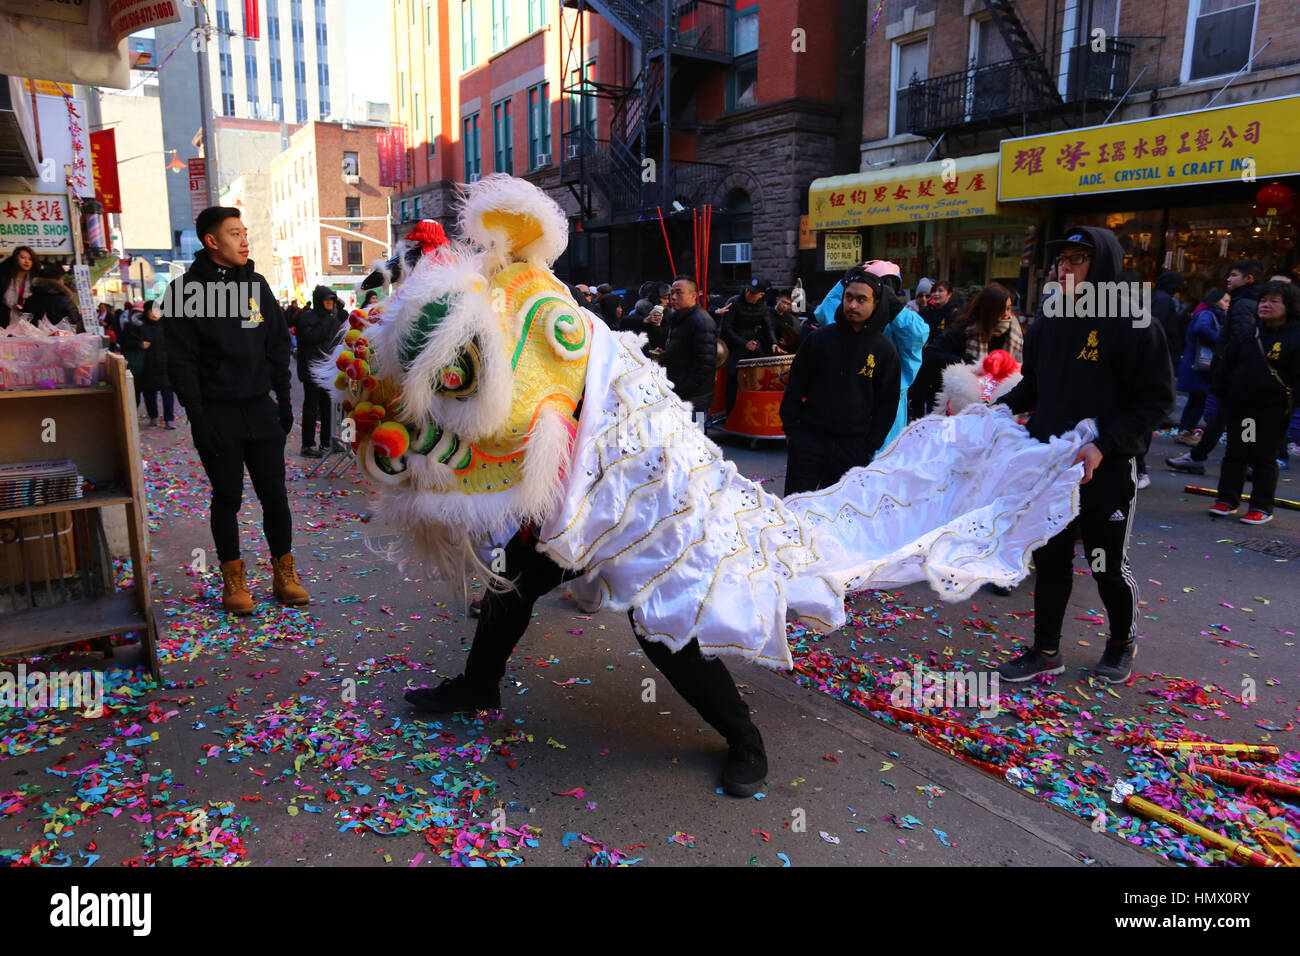 New York, USA. 04th Feb, 2017. New York Chinatown celebrating the Lunar New Year, Year of the Rooster with Lion - Stock Image